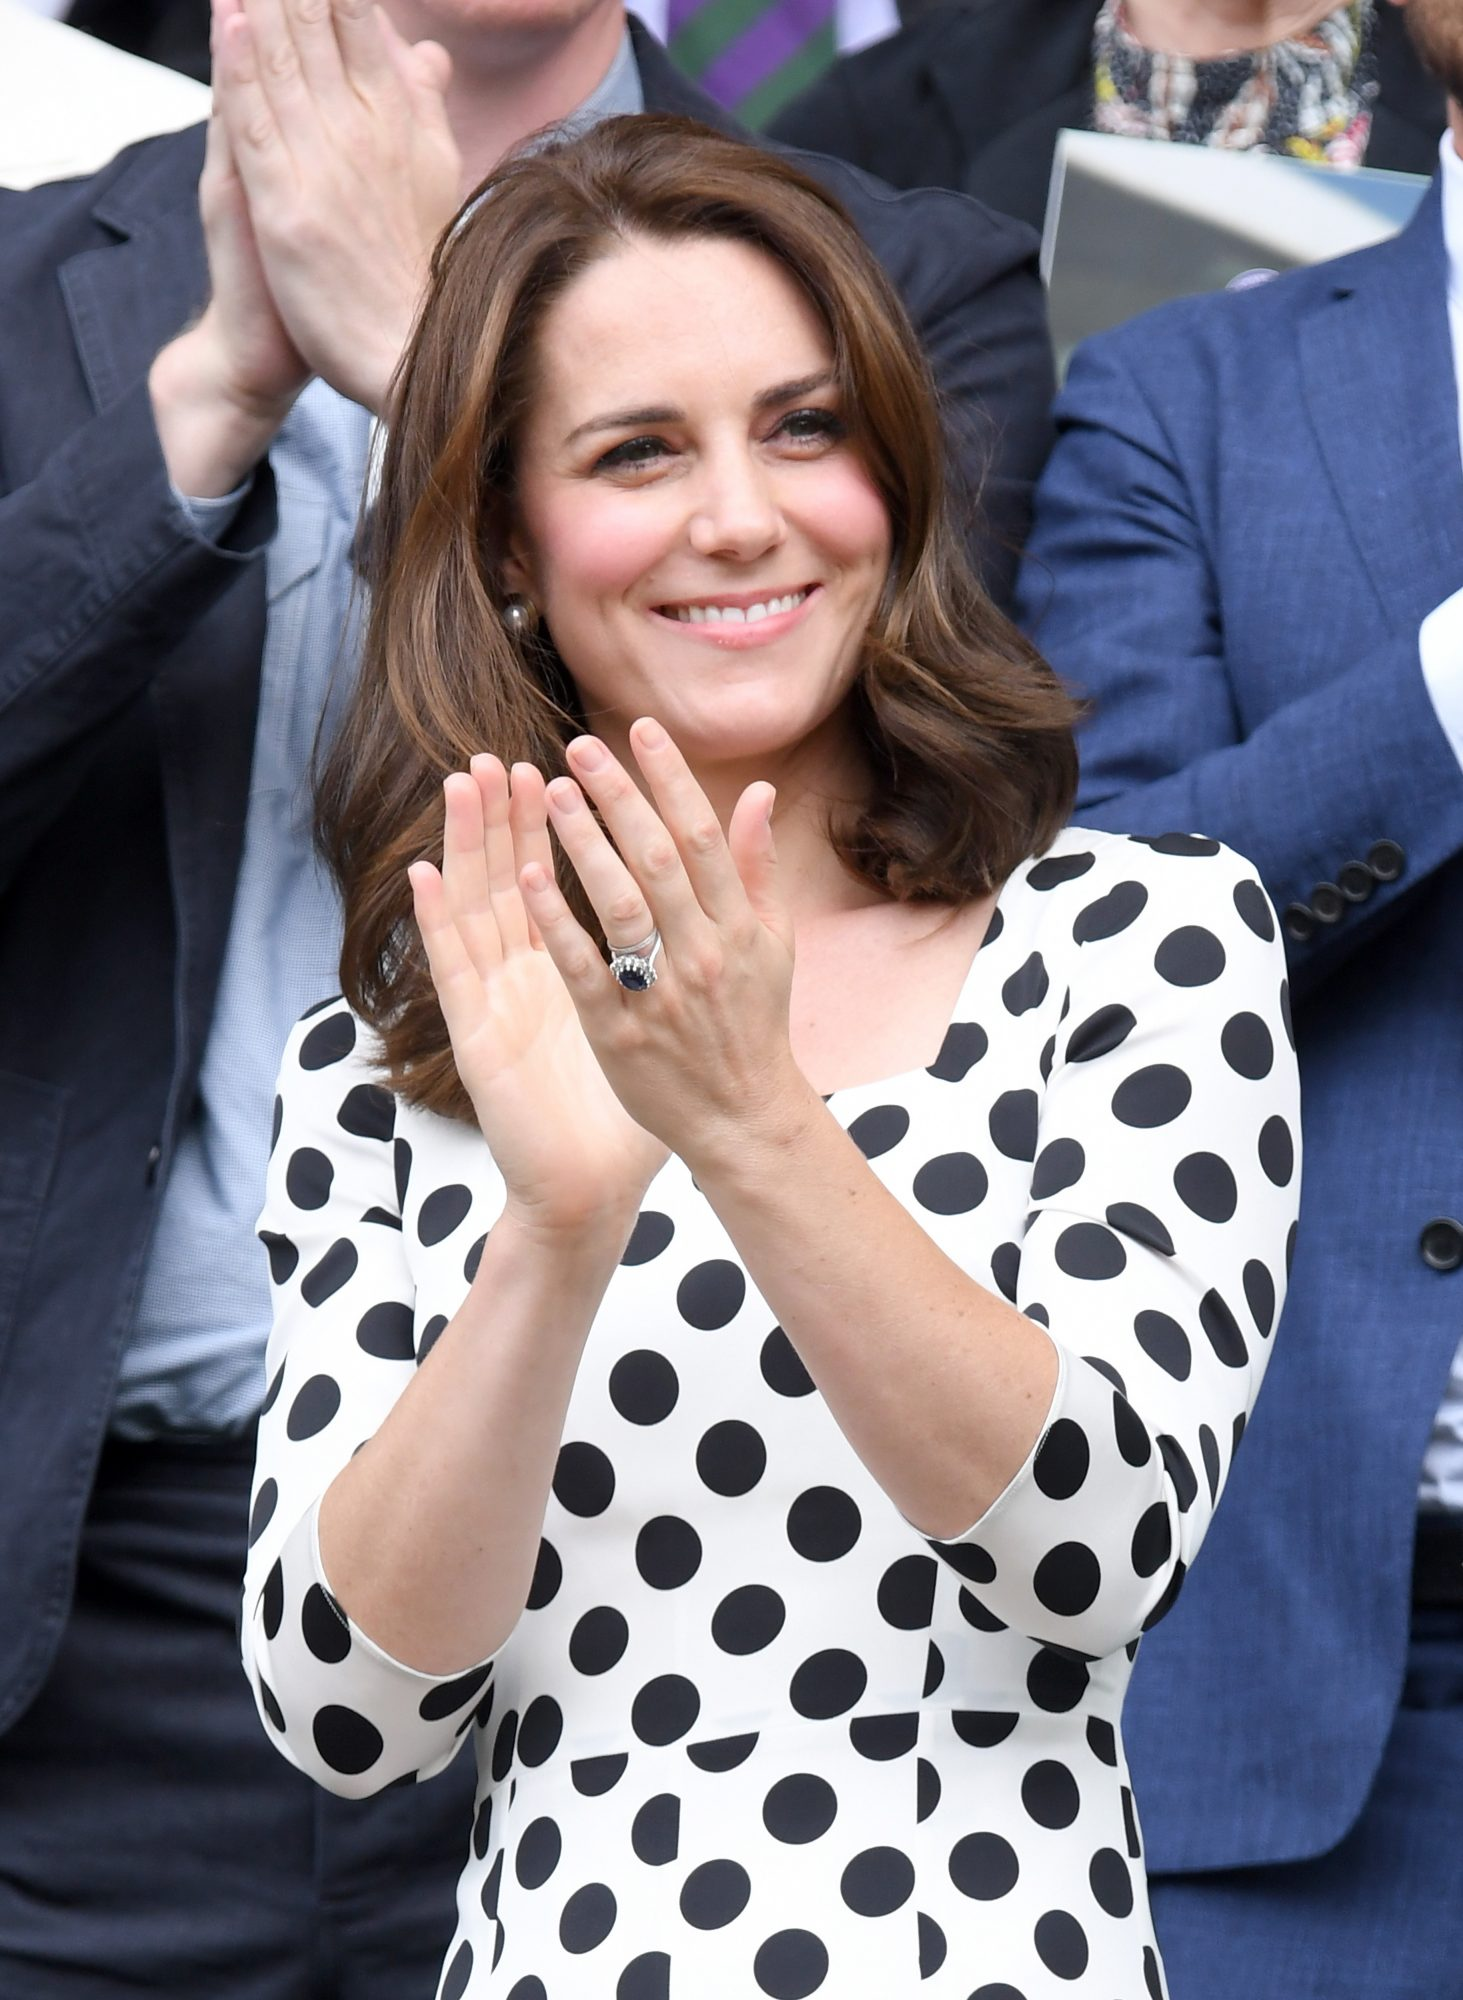 Kate Middleton Clapping